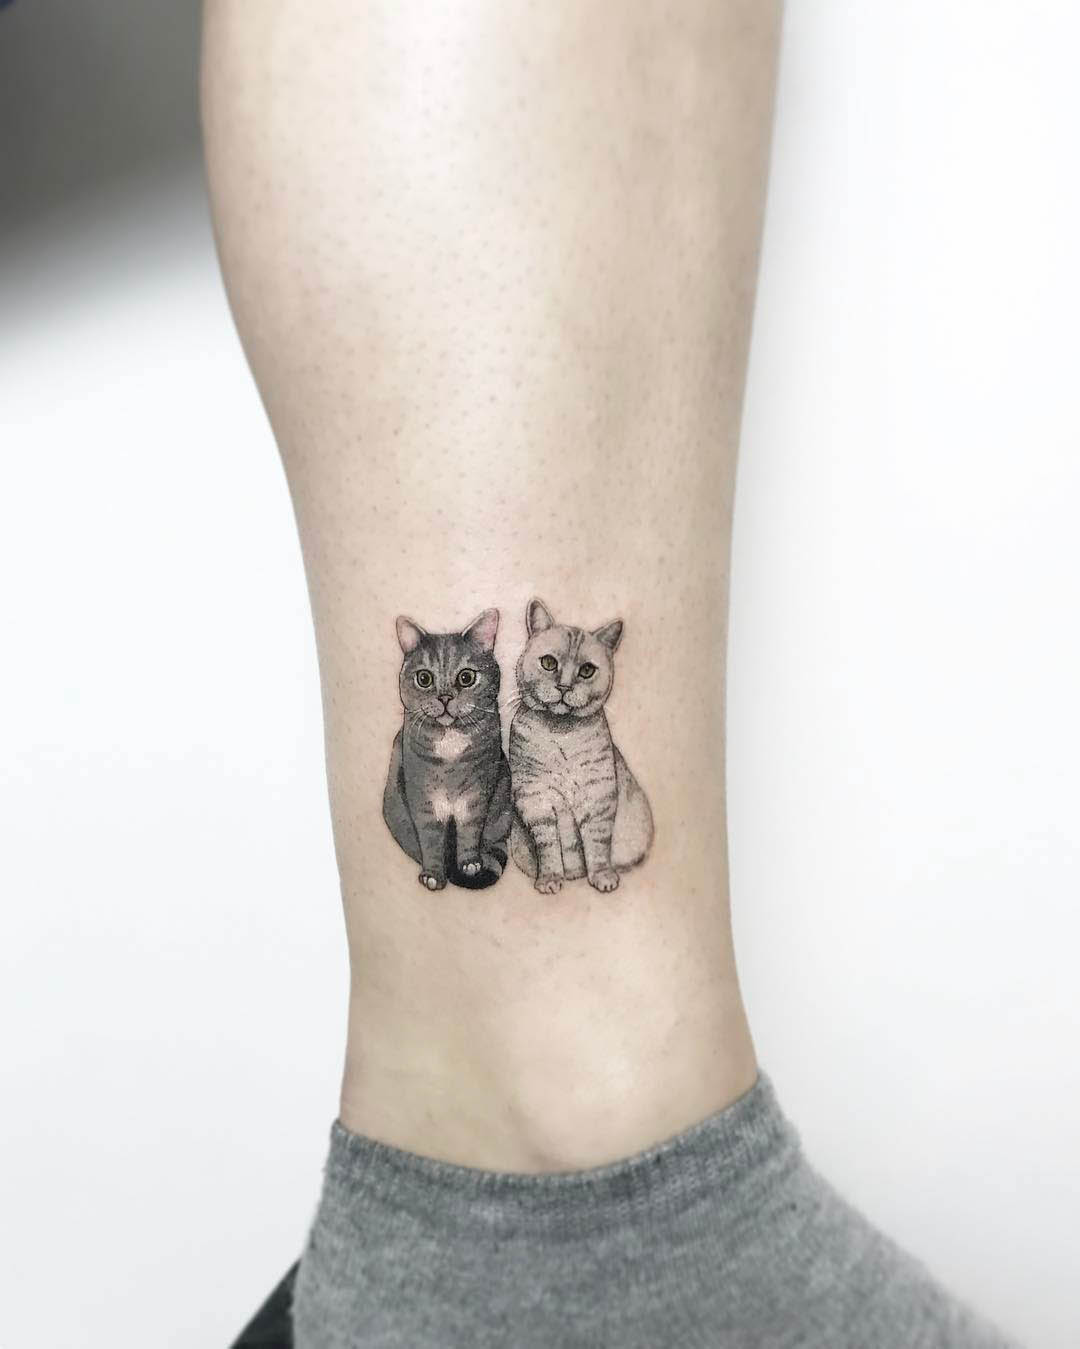 Small cats tattoo on ankle